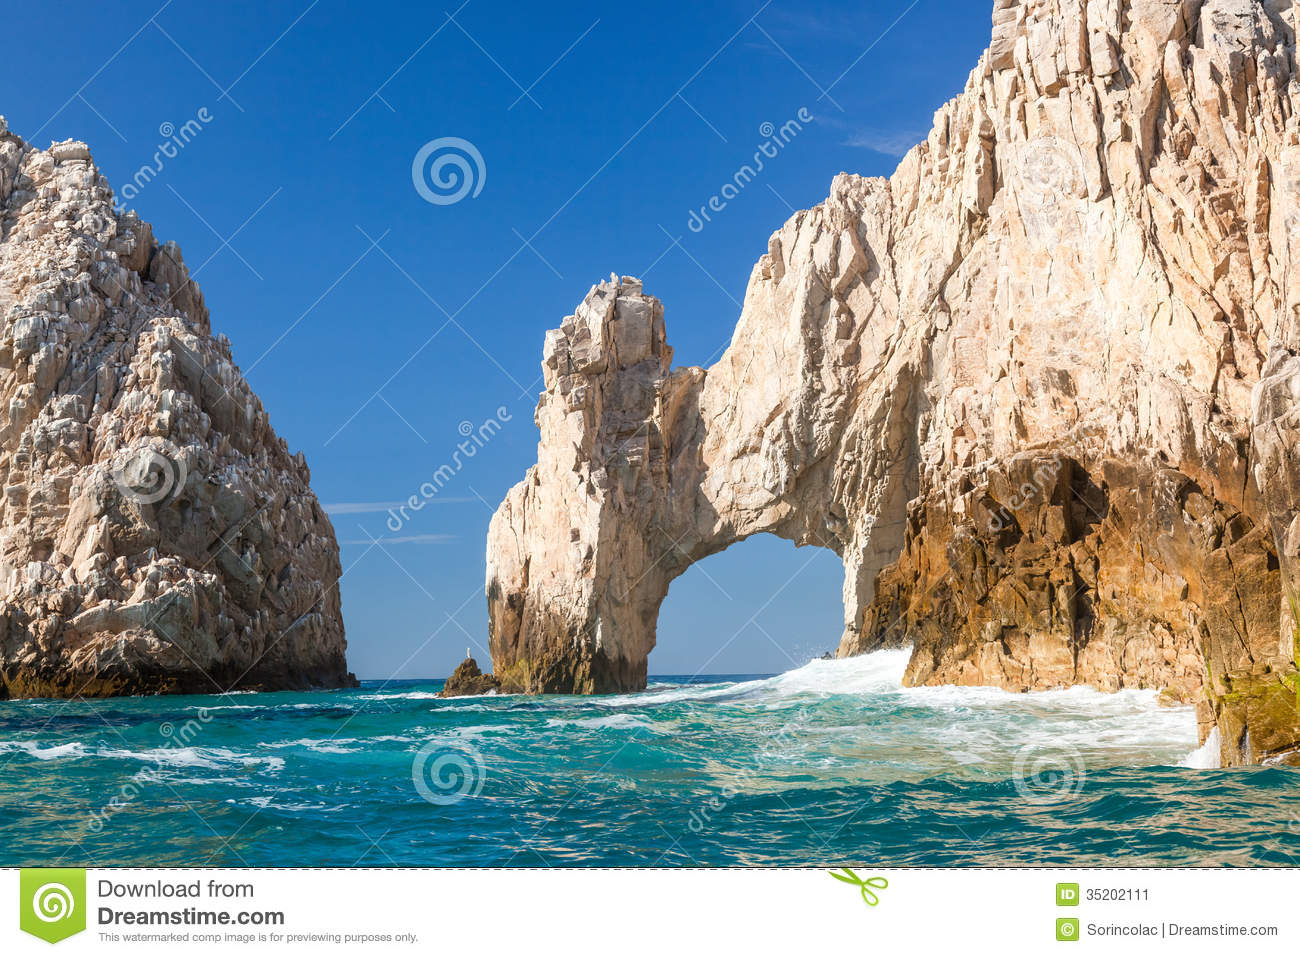 Cabo San Lucas clipart #10, Download drawings